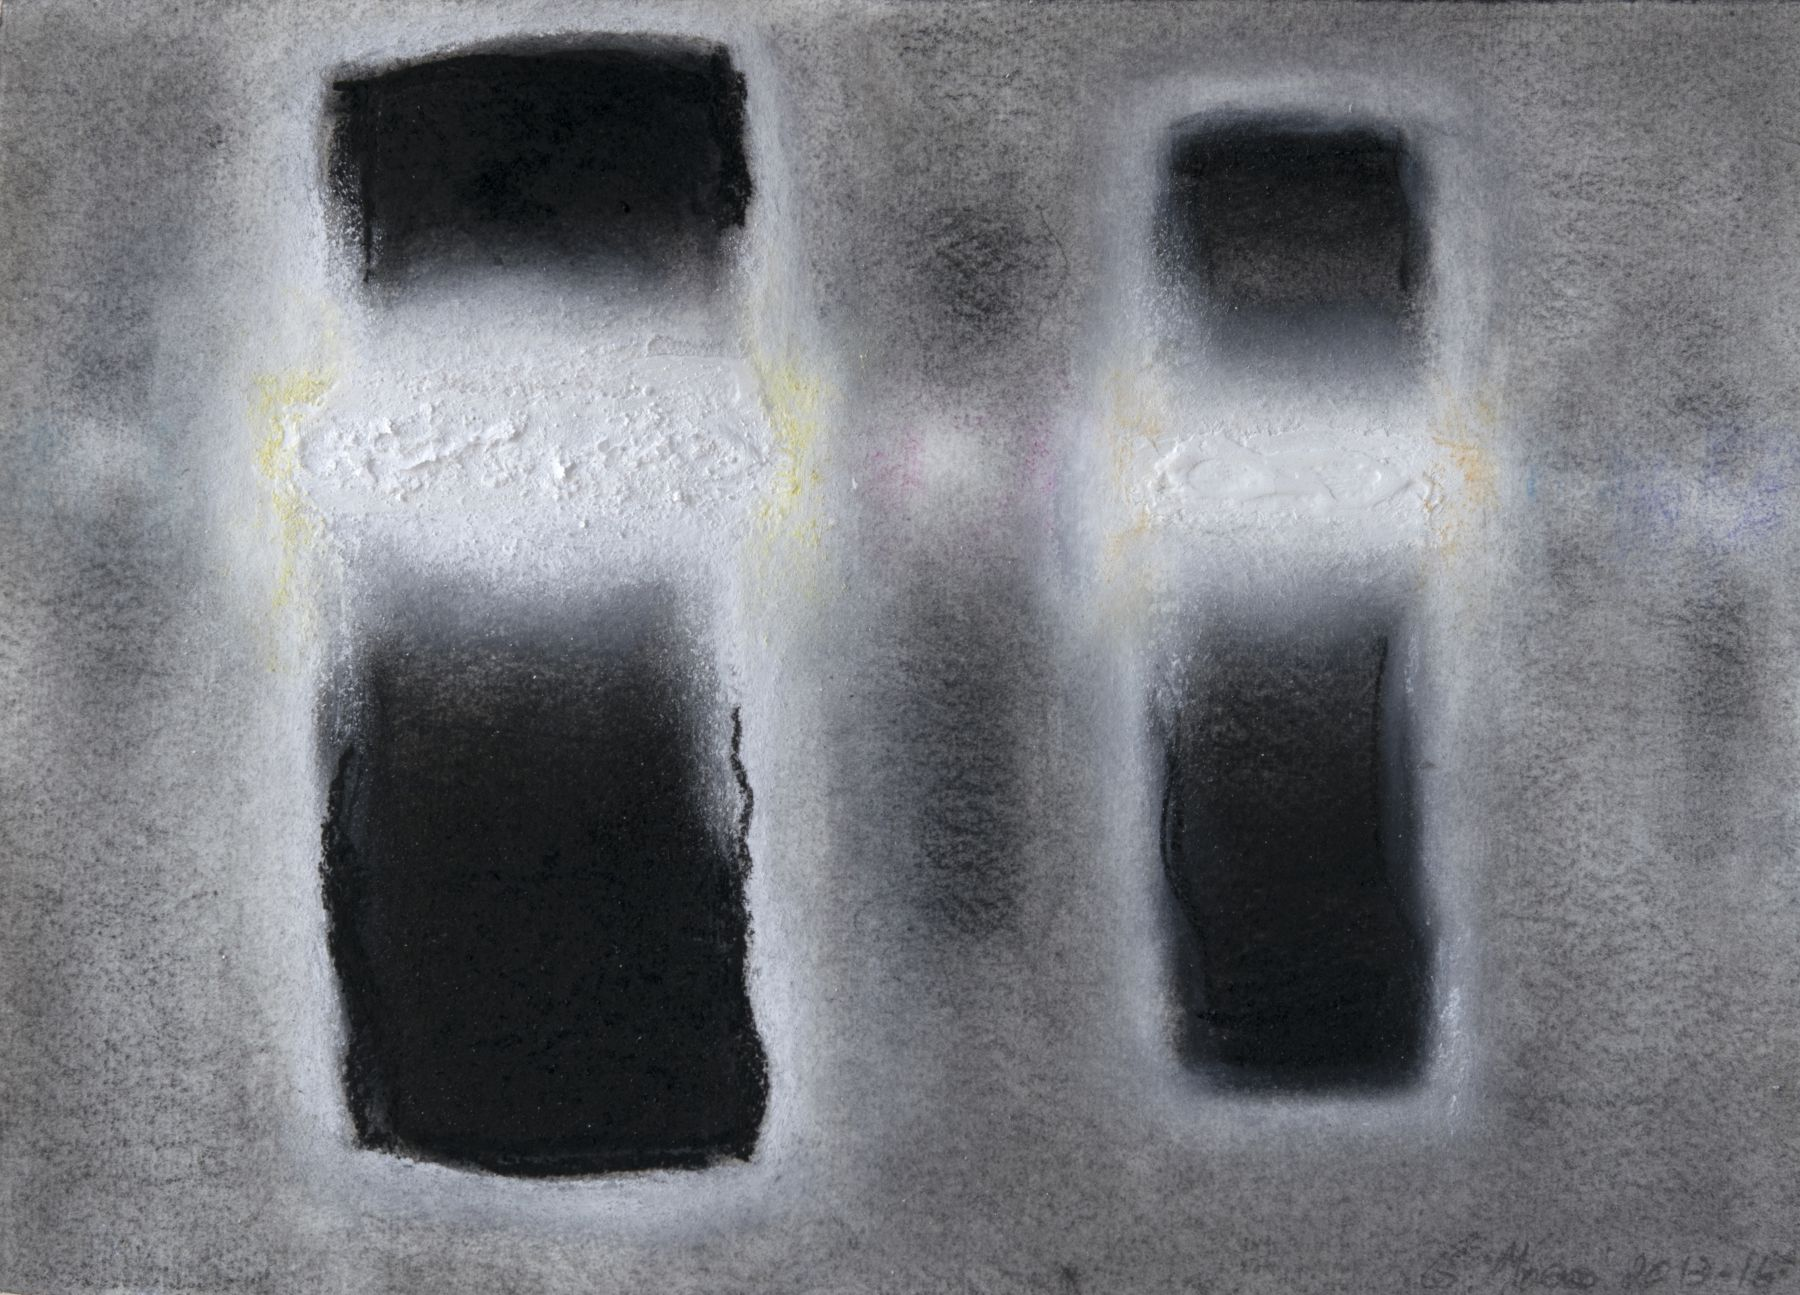 Gerard Mosse, B & W 3, 2013-16  8 1/4 x 11 1/2 in. (21 x 29.2 cm)  Graphite, conte crayon, charcoal, acrylic, pigment, and pastel on hand wove paper